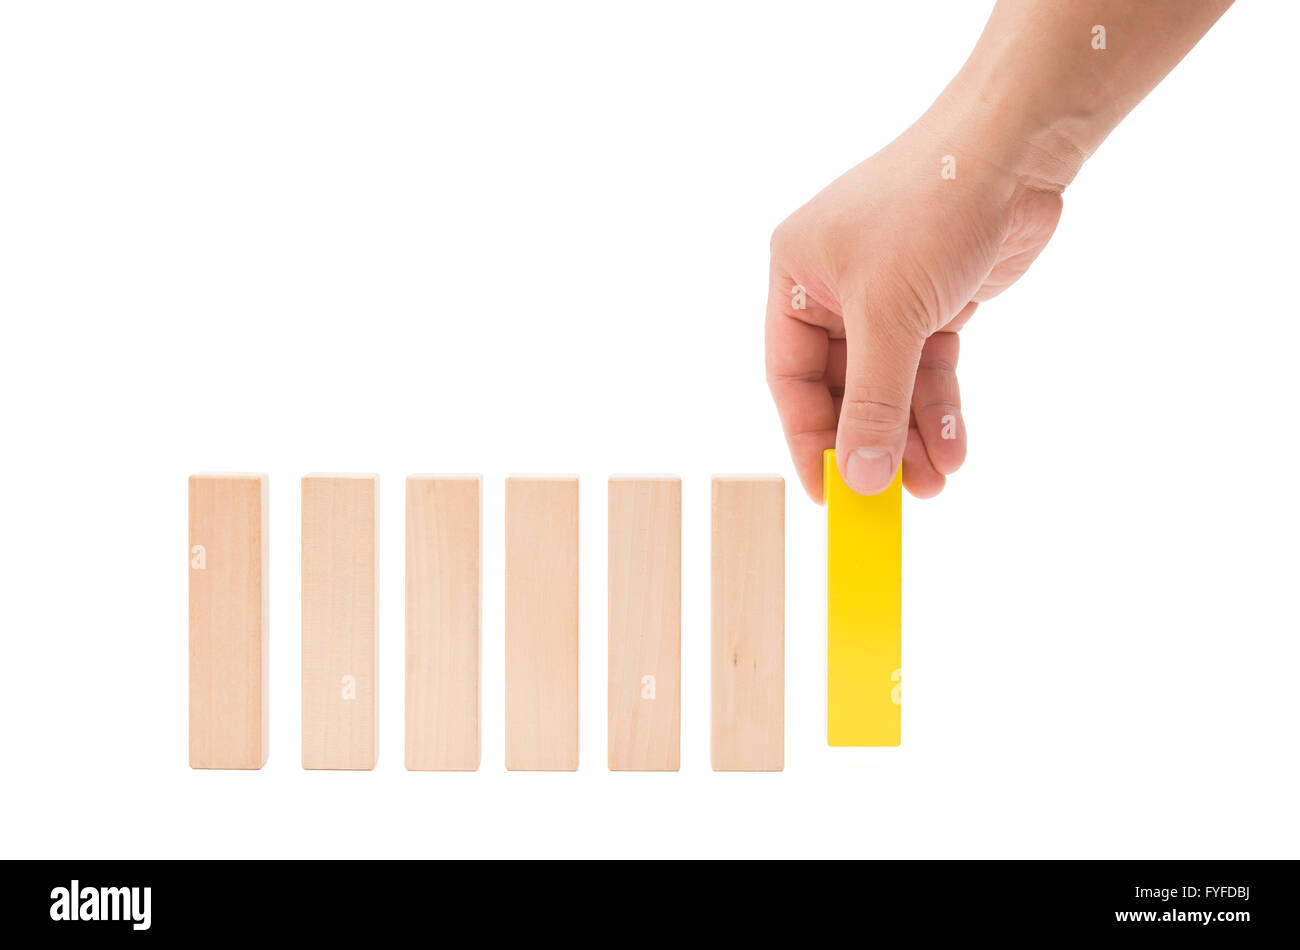 making up a line of wooden toy blocks on white background with clipping path - Stock Image